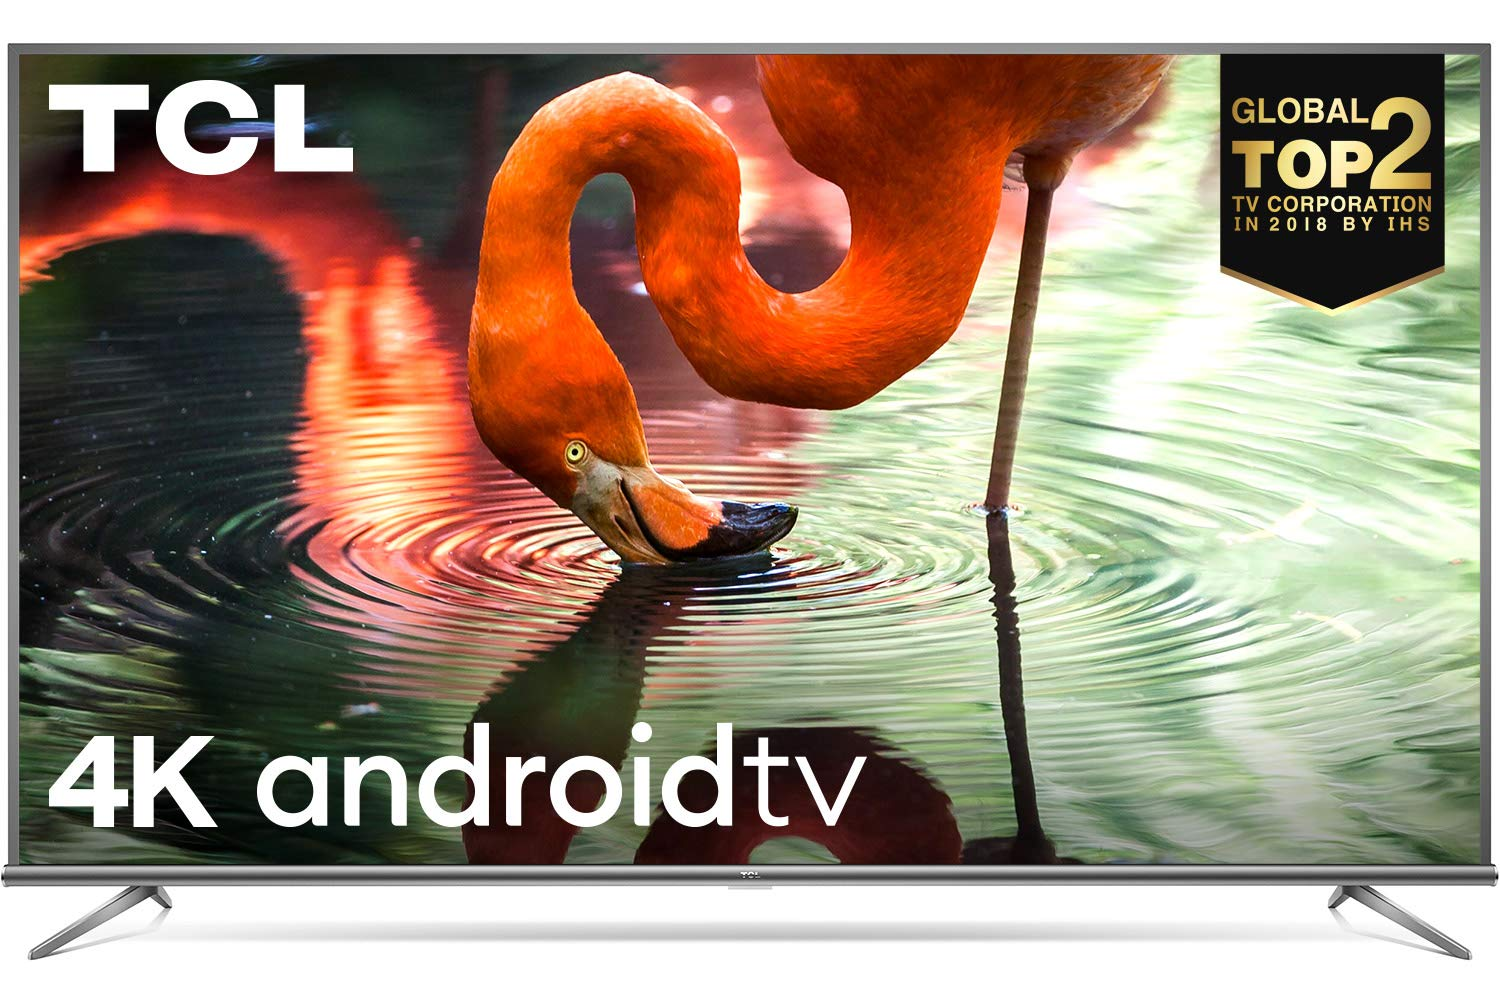 TCL 125.7 cm (50 inches) 4K Ultra HD